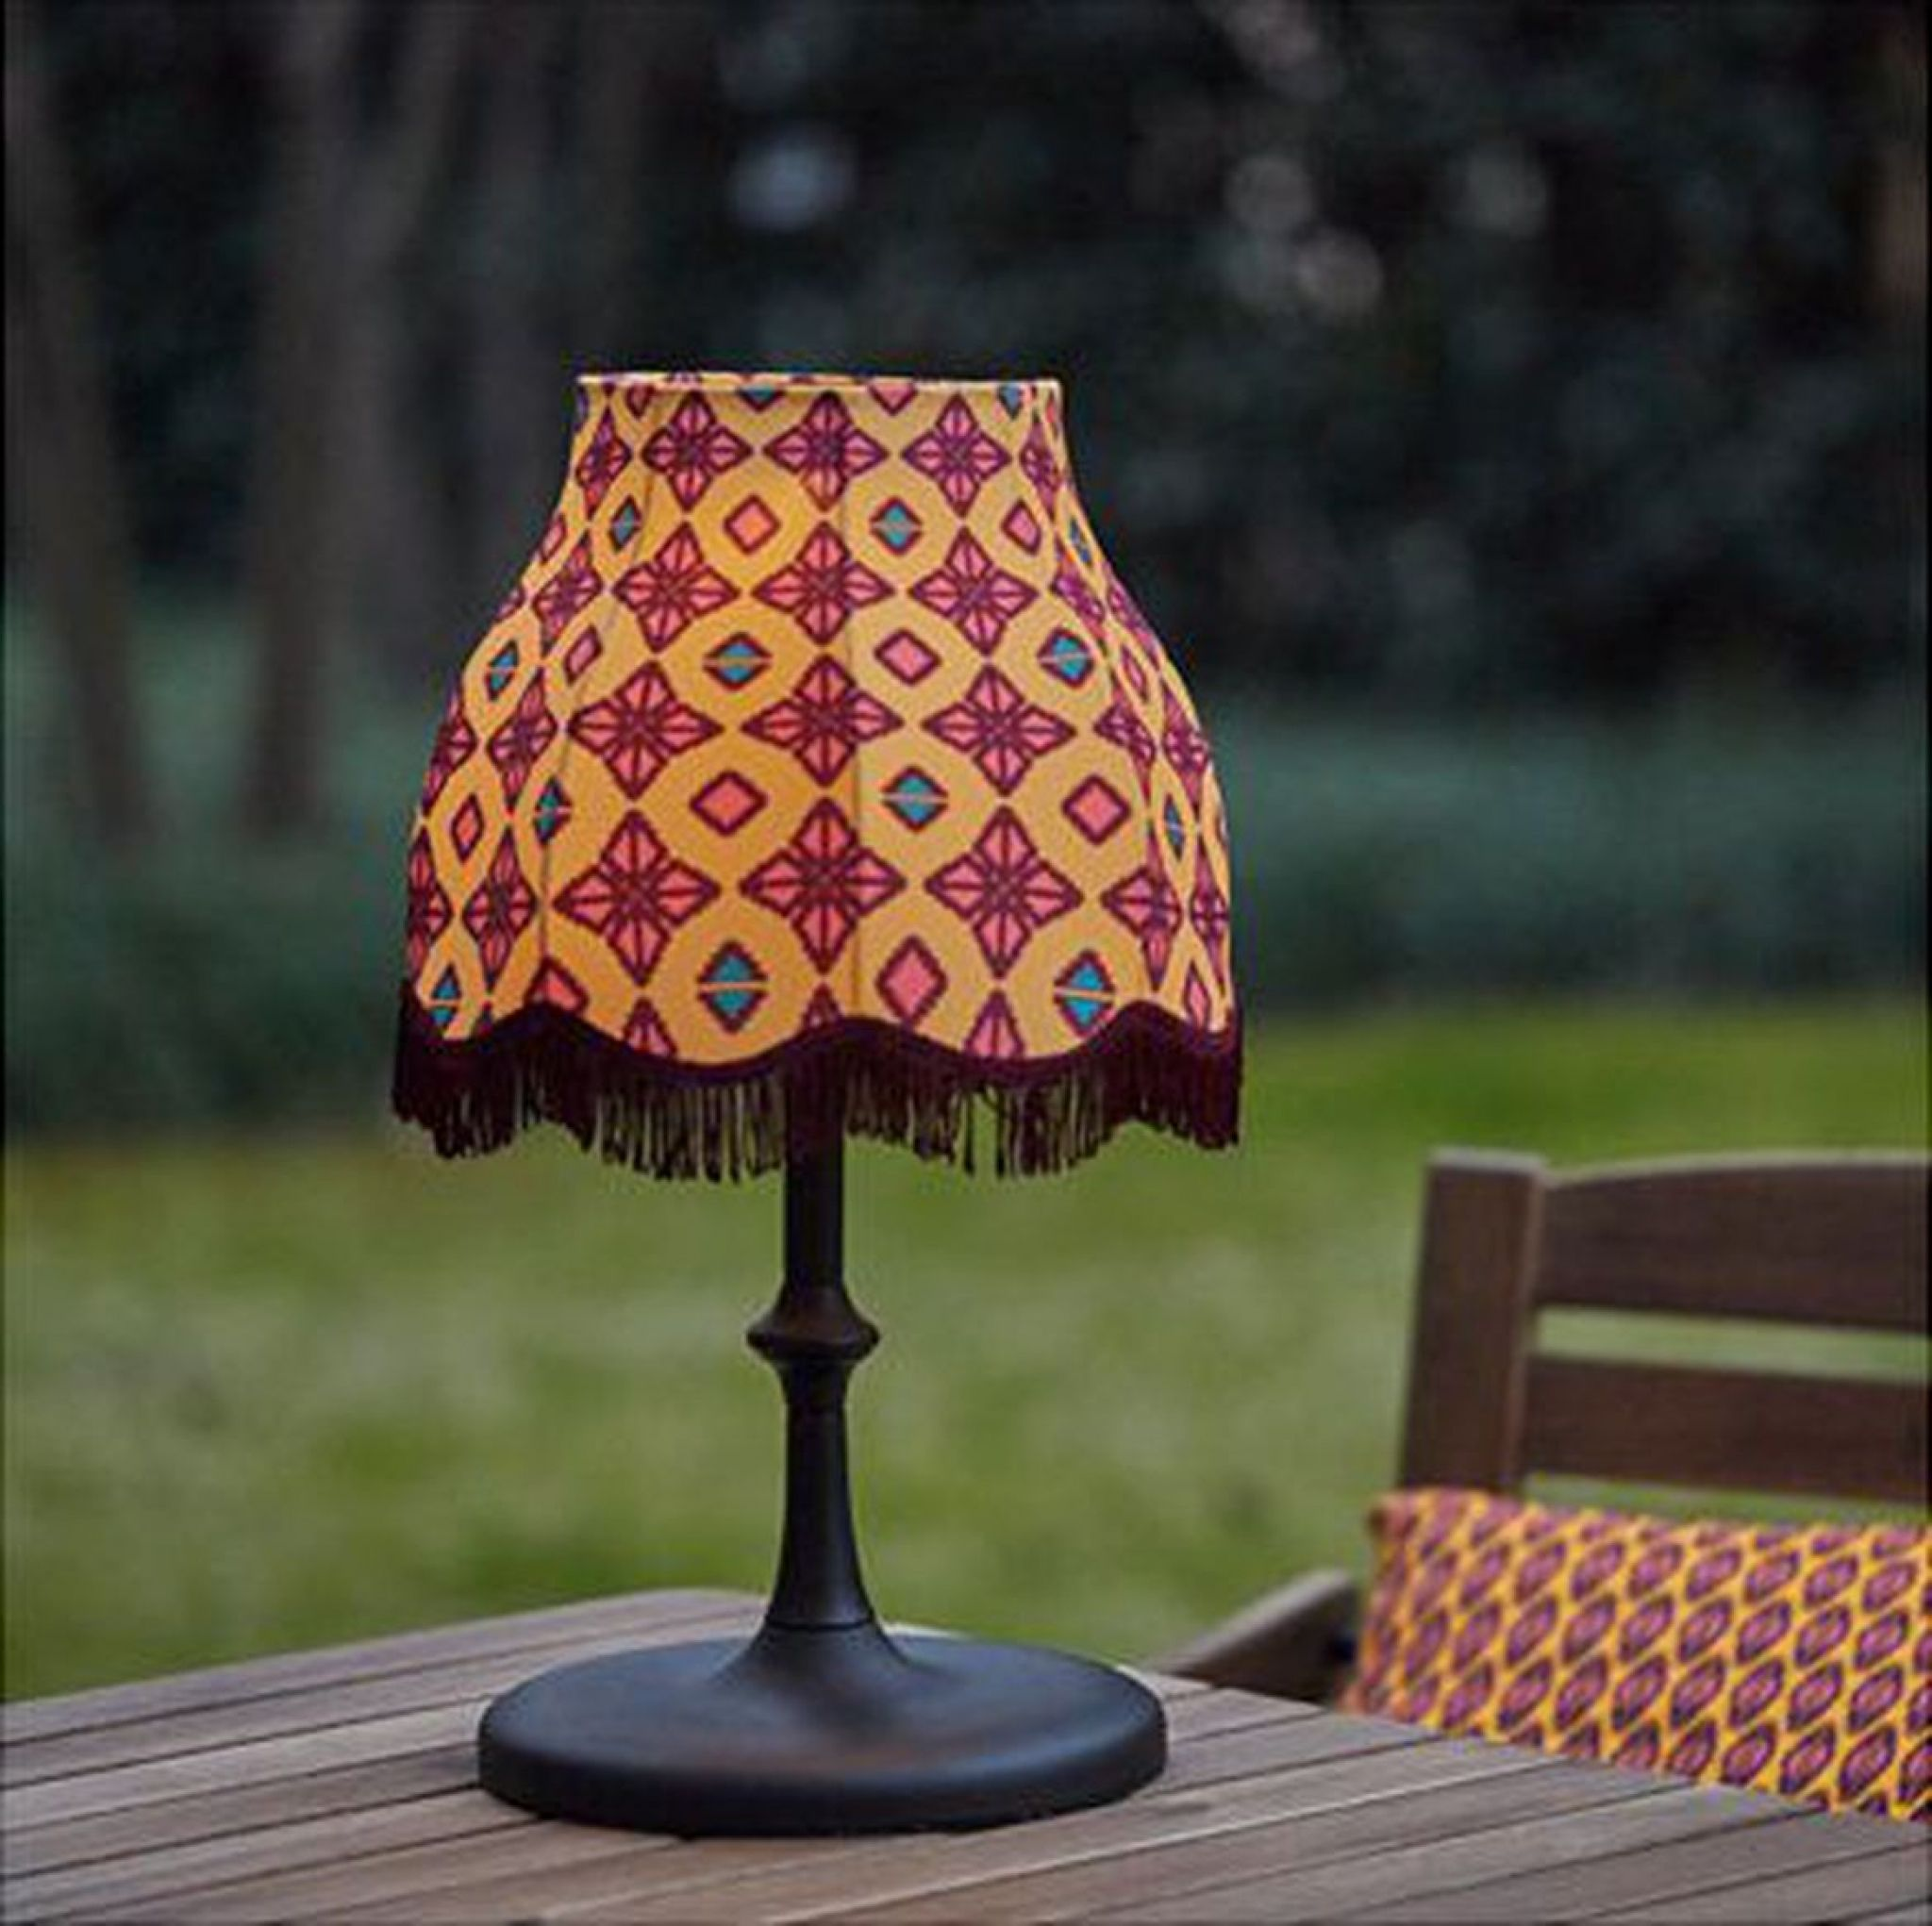 ikea solar lighting. IKEA SOLVINDEN LED Solar-powered Table Lamp Easy To Use Because No Cables Or Plugs Are Needed. Ikea Solar Lighting N